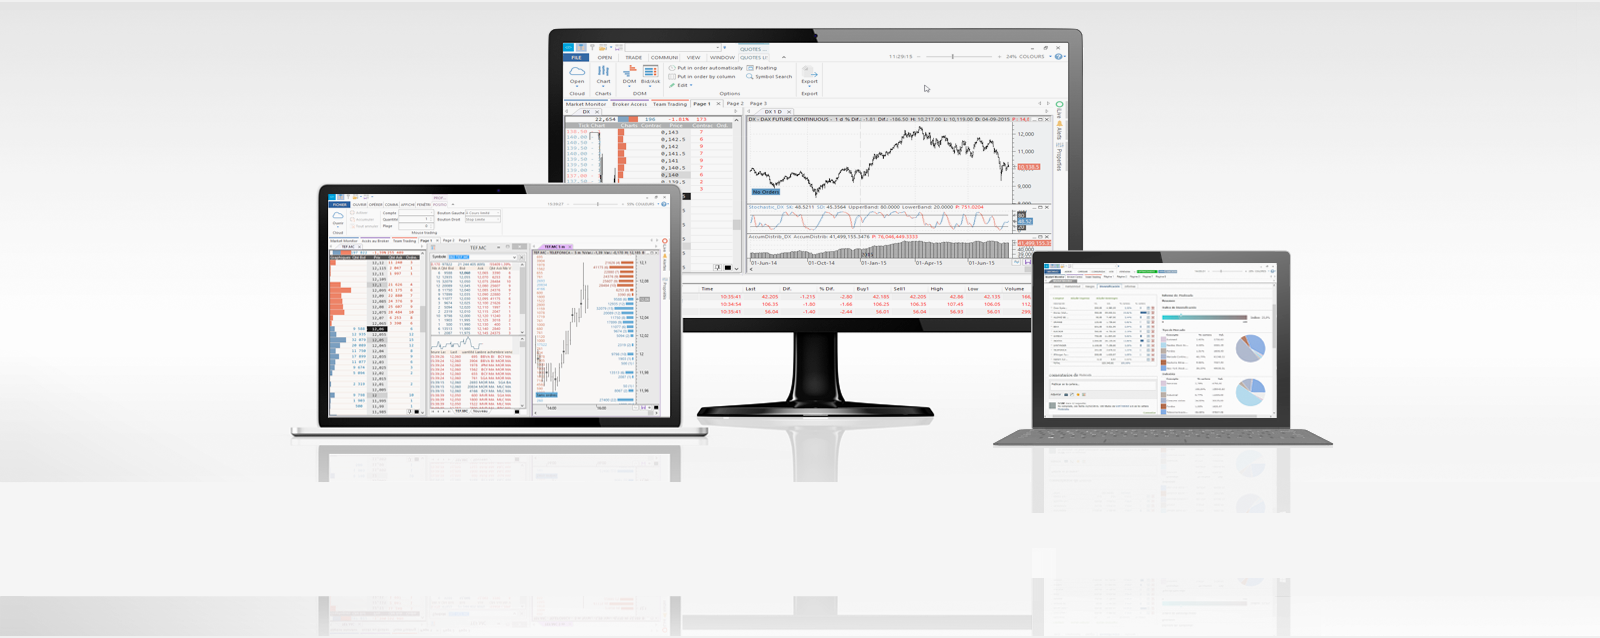 Real time trading platform for profesional traders